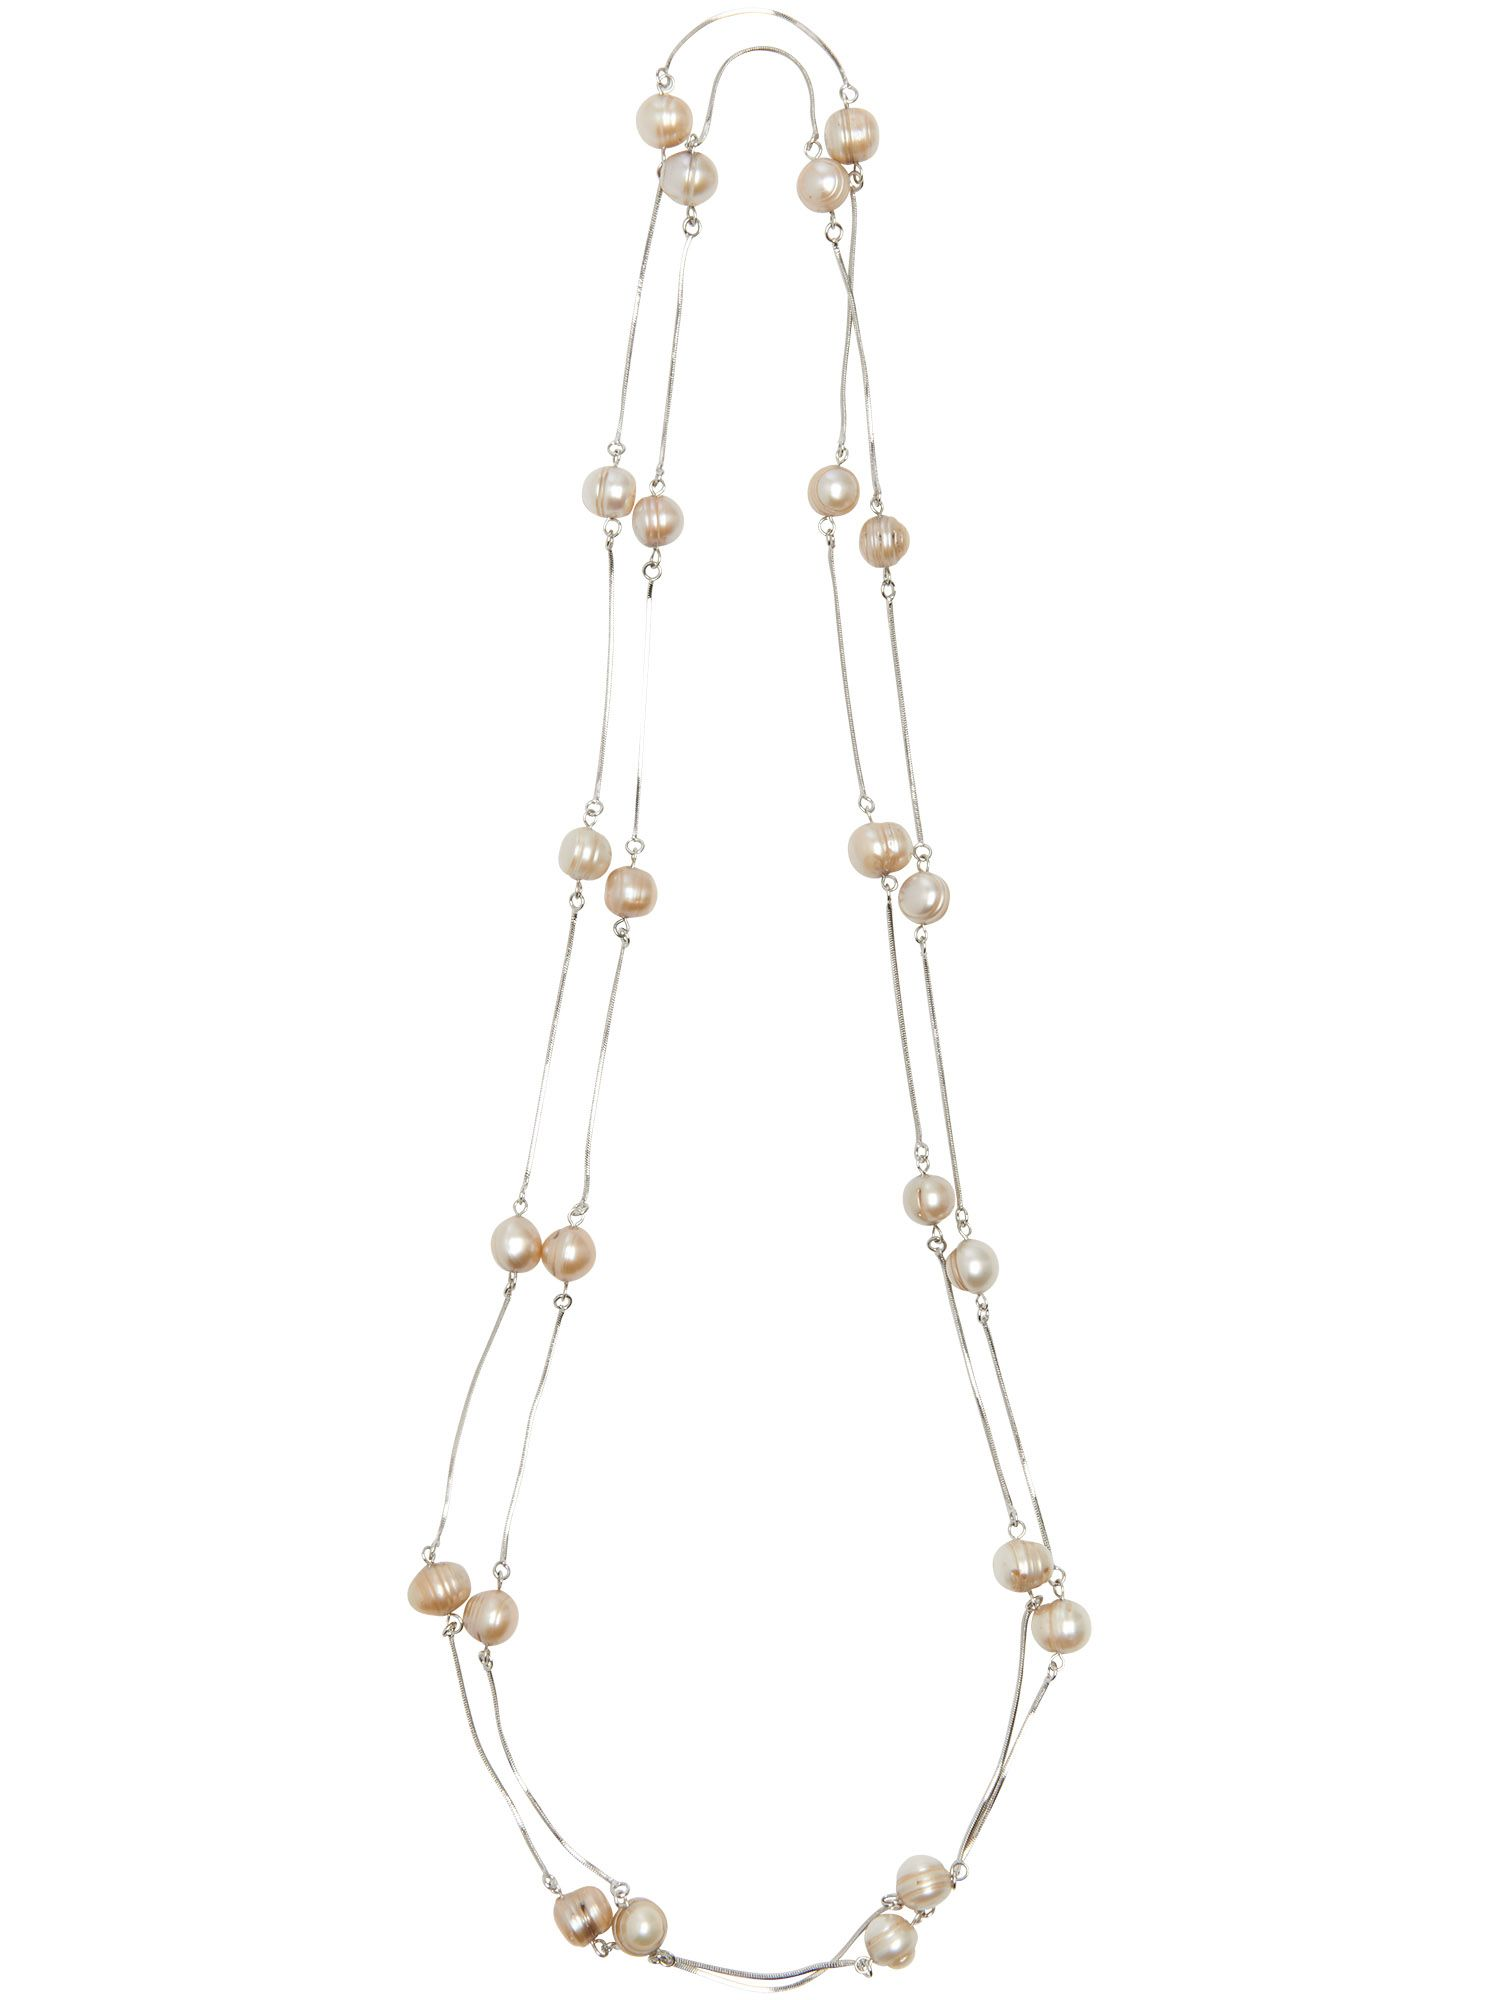 Delilah pearl and chain necklace